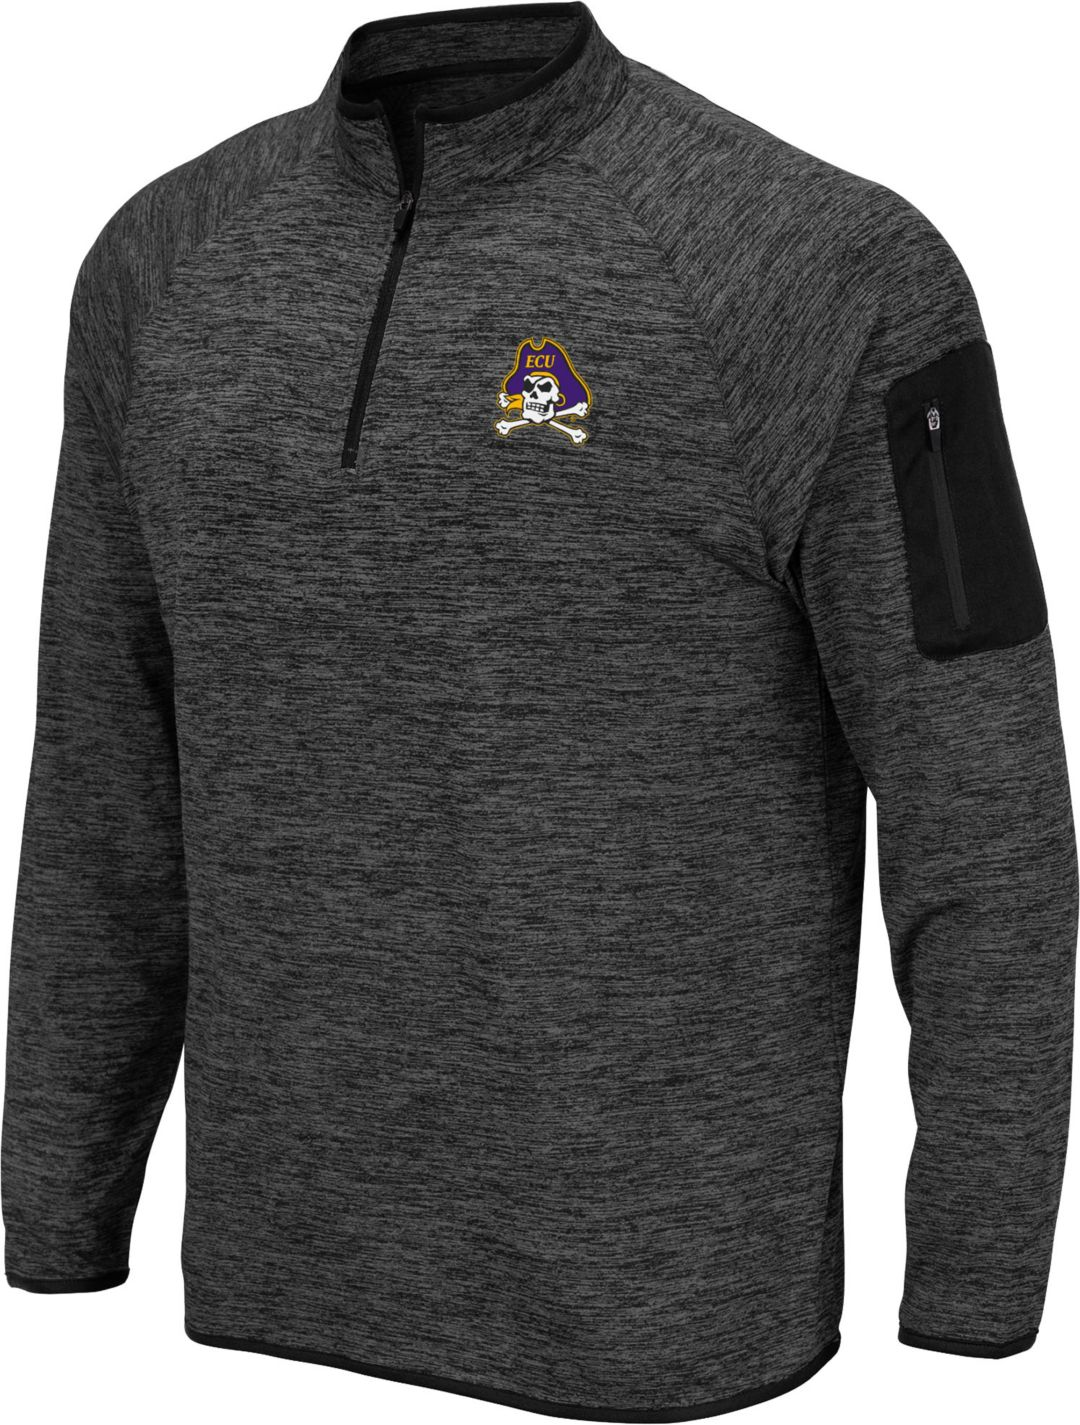 more photos a1ee1 457a6 Black NCAA East Carolina Pirates Mens 3-Stripe Football ...